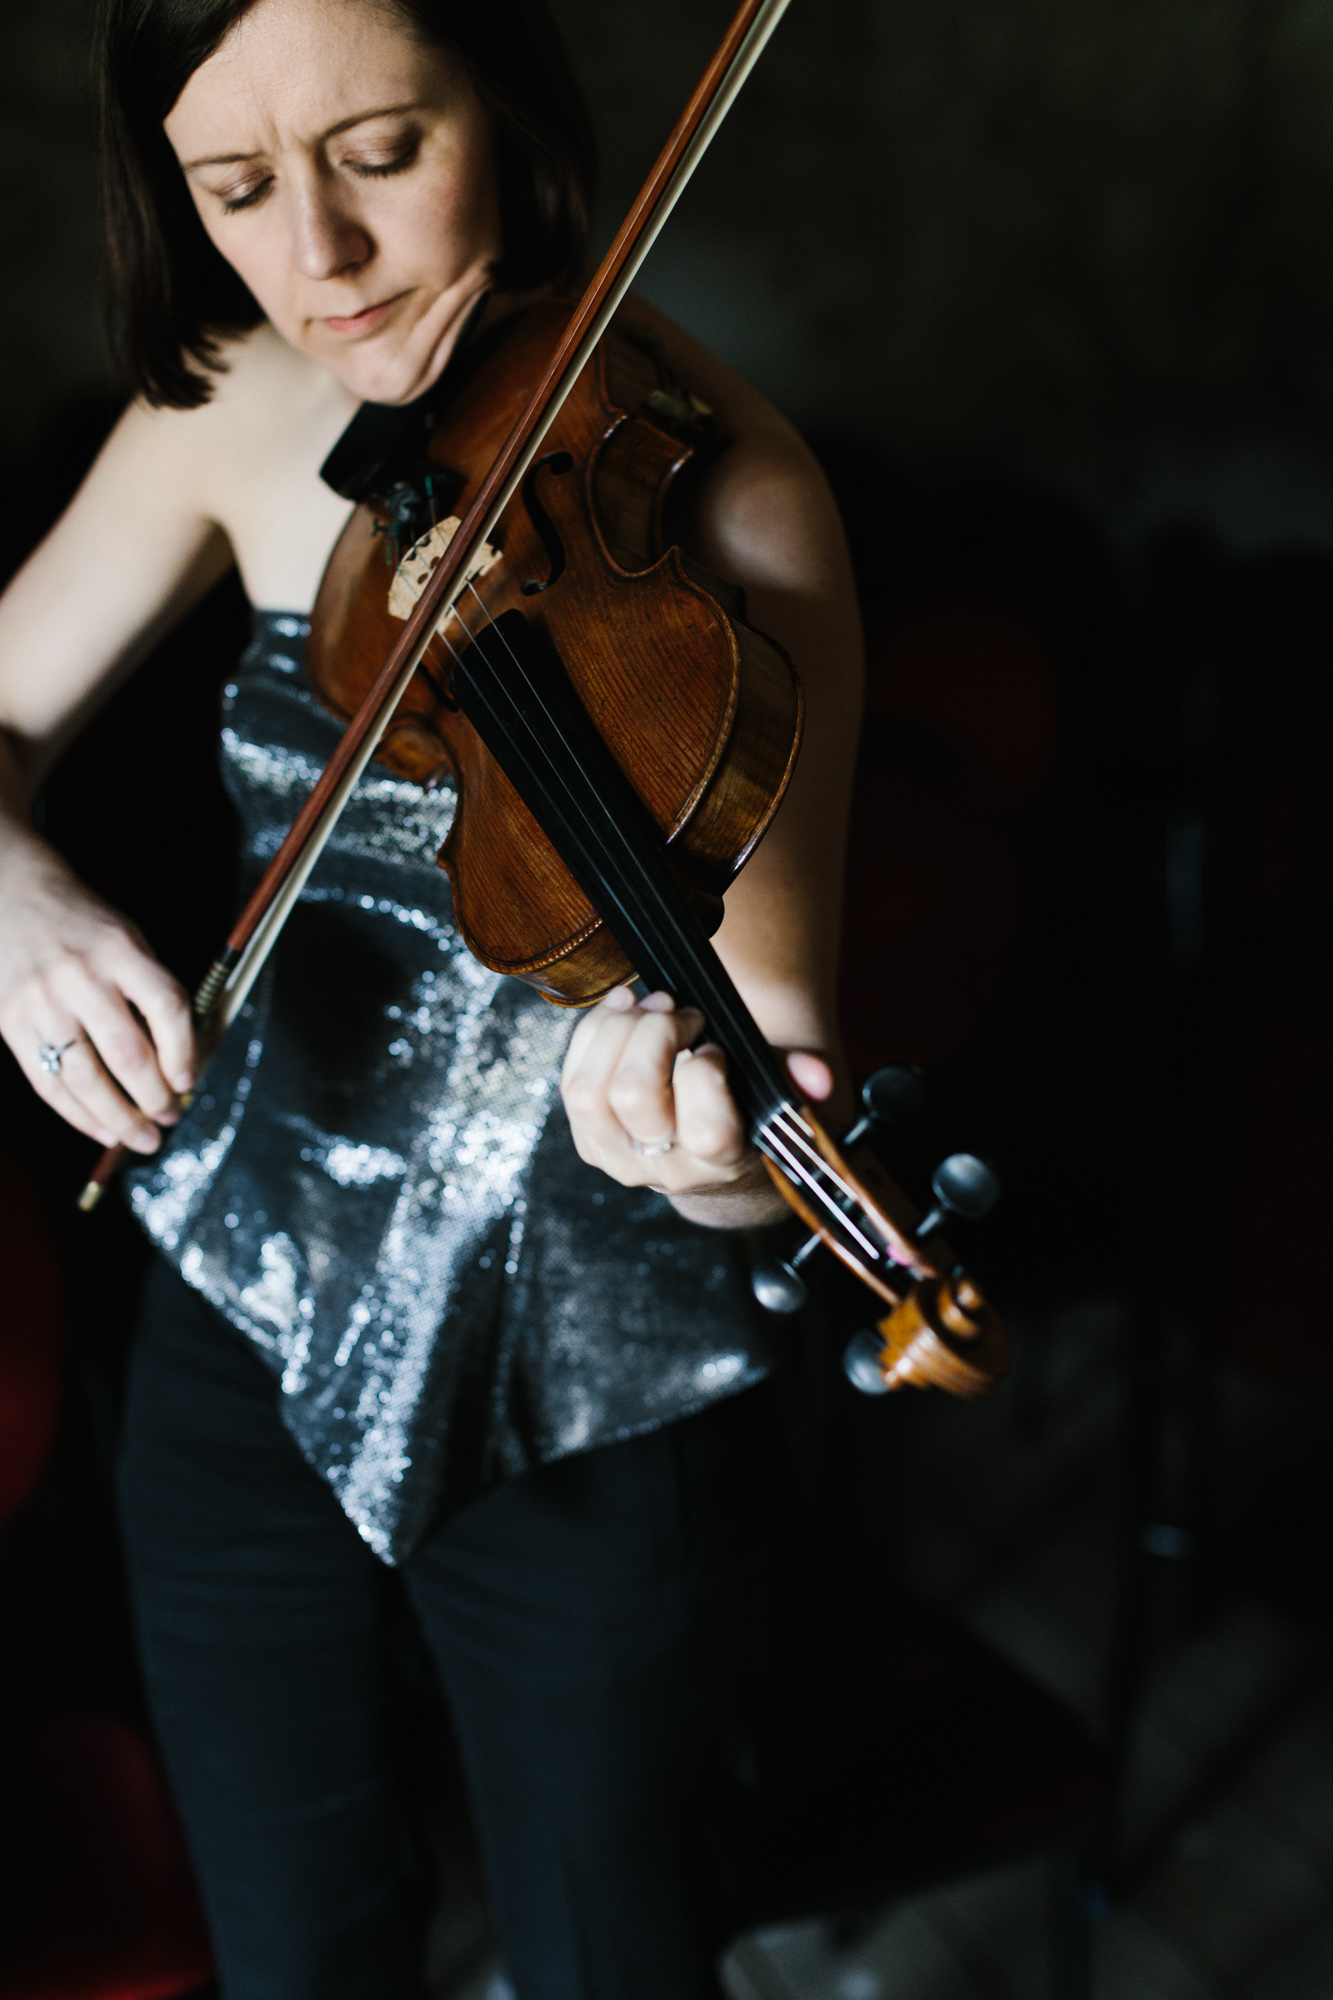 Marnie Hawson, Melbourne travel photographer for The National Trust and Tasmanian Chamber Music Festival